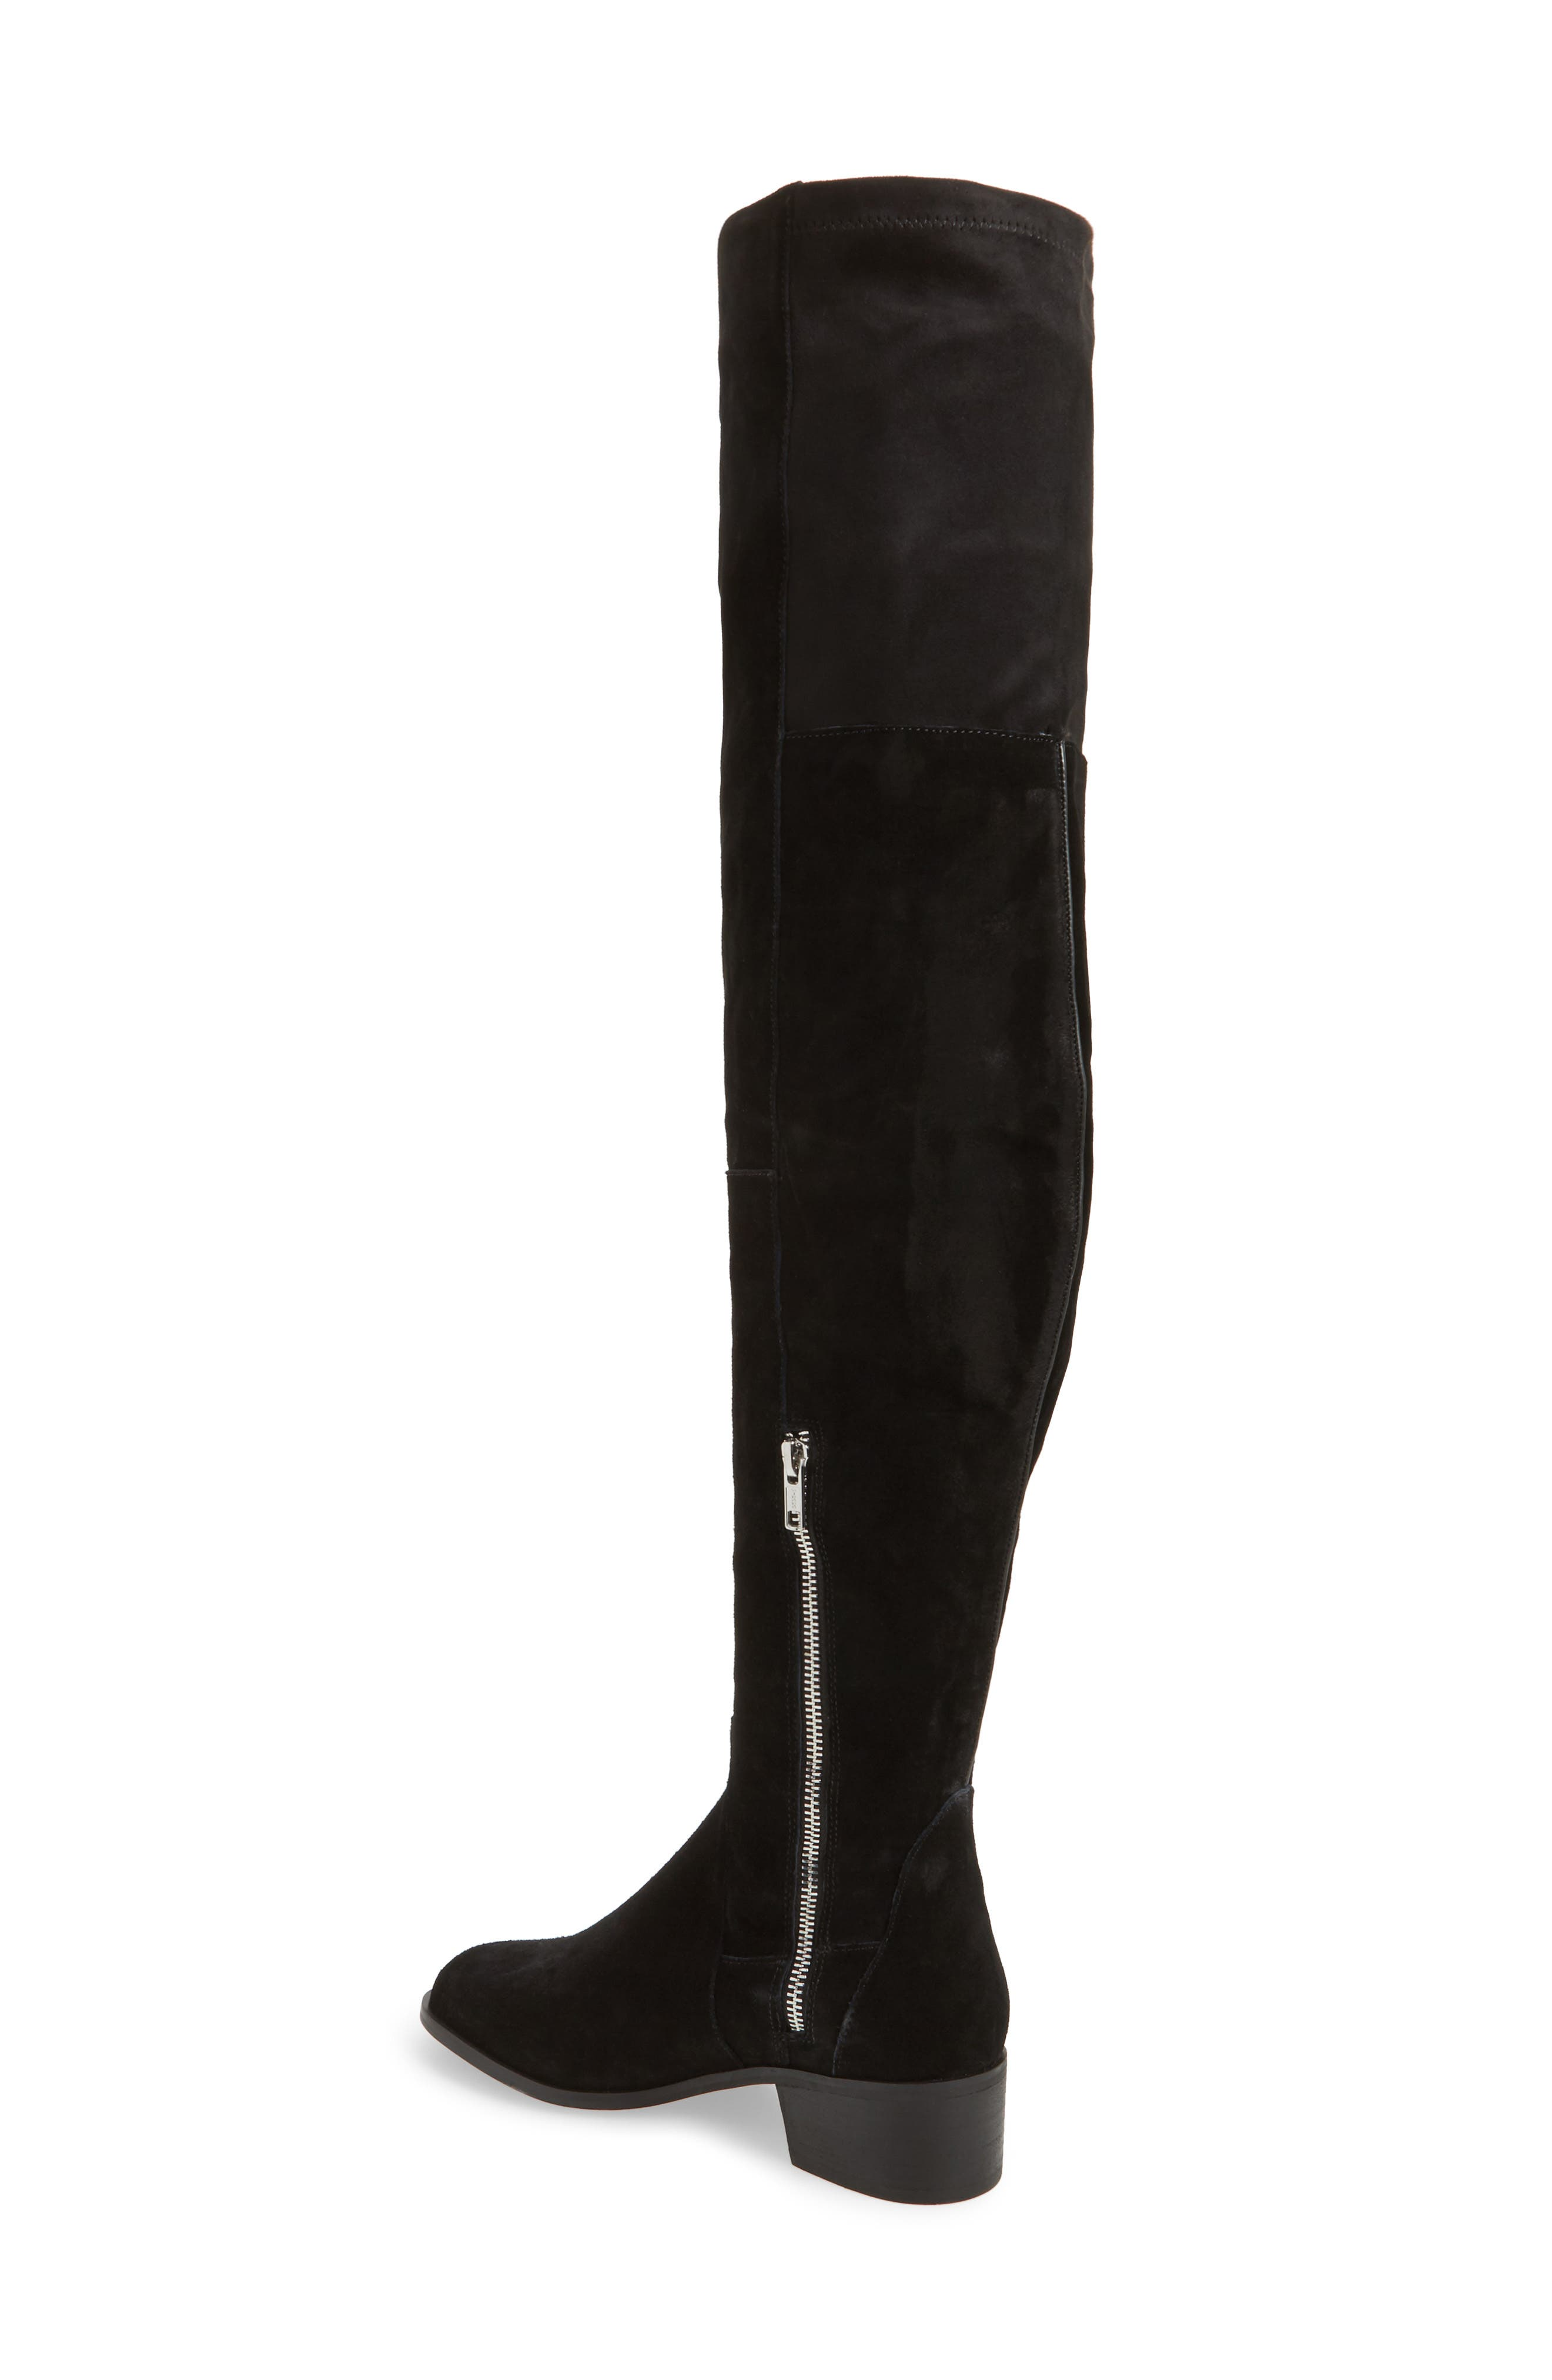 Everly Thigh High Boot,                             Alternate thumbnail 2, color,                             001